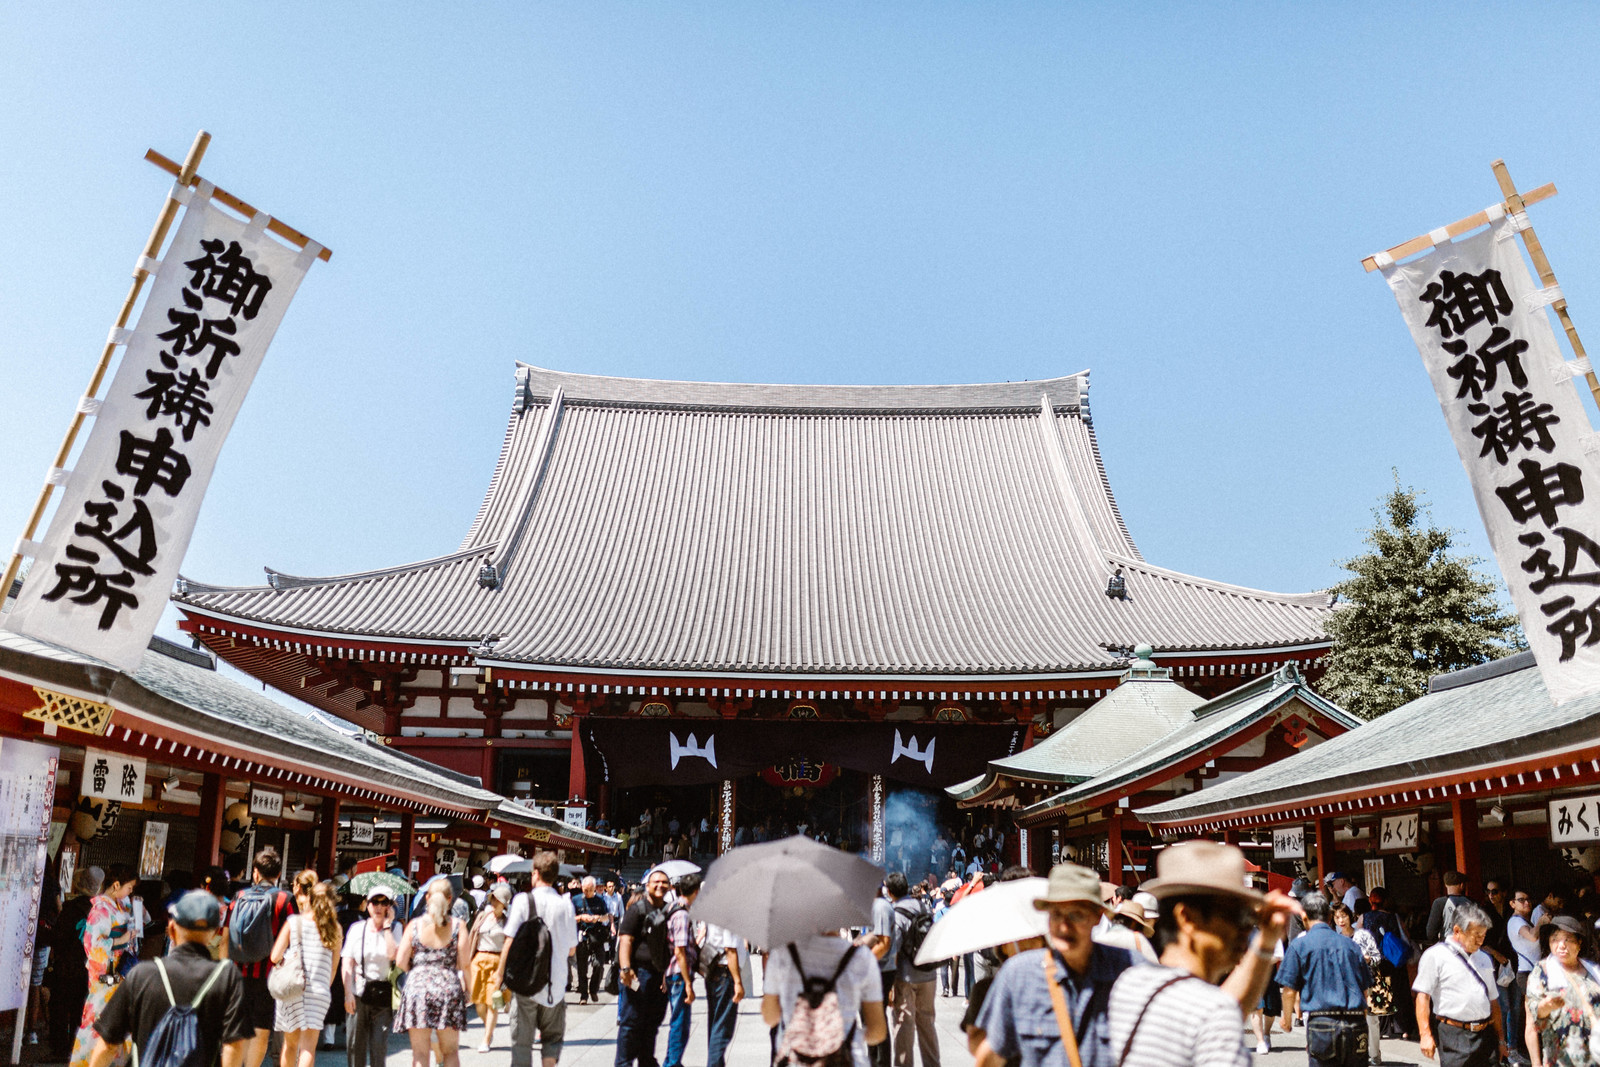 One of the top reasons to visit Tokyo is to see the historic old city for yourself! Asakusa is full of old temples and shrines emulating the centuries old way of Japanese culture.